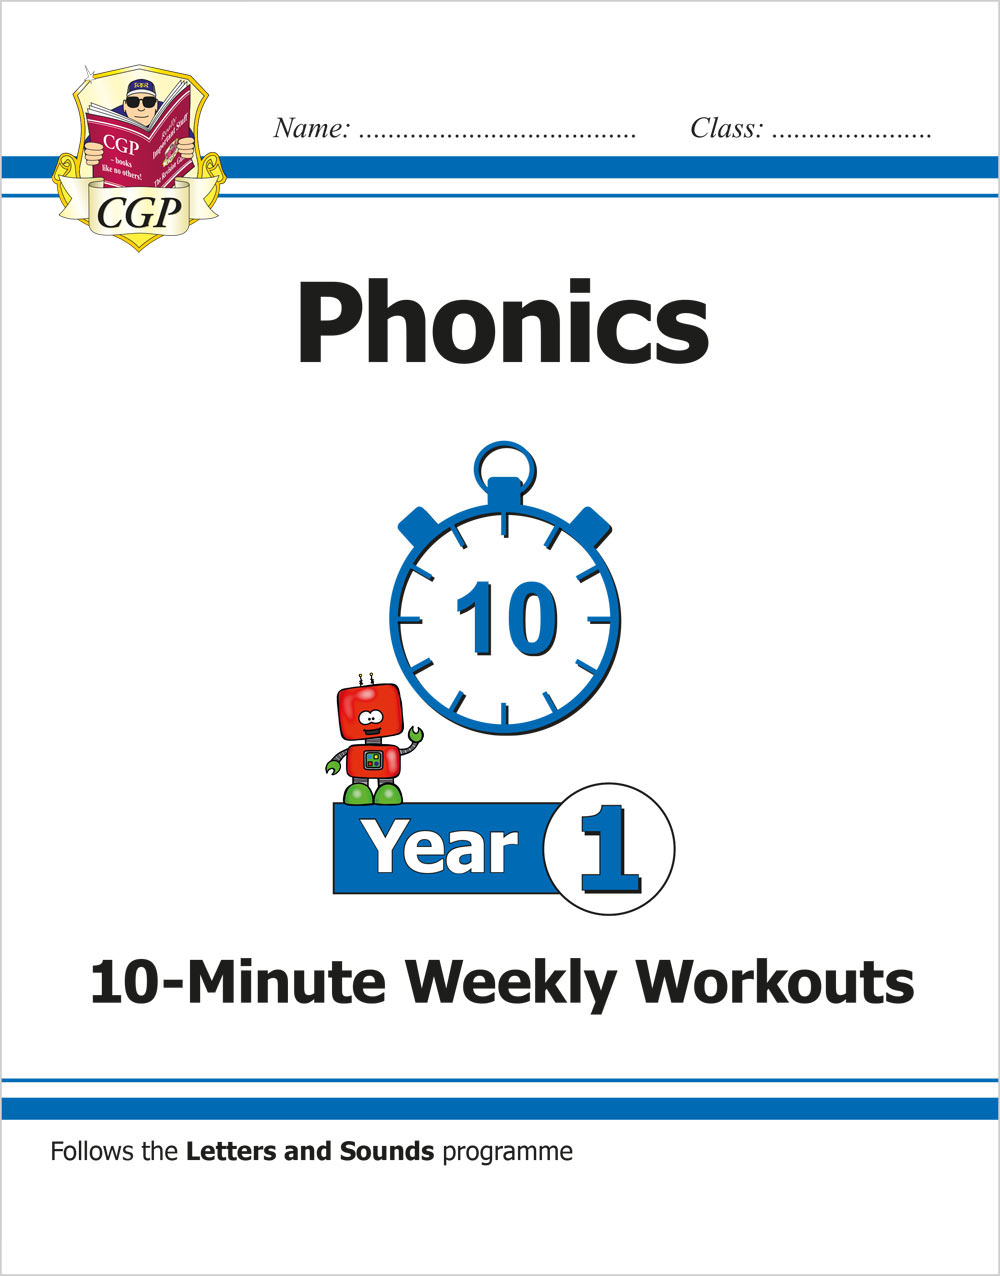 E1OXW11 - KS1 English 10-Minute Weekly Workouts: Phonics - Year 1